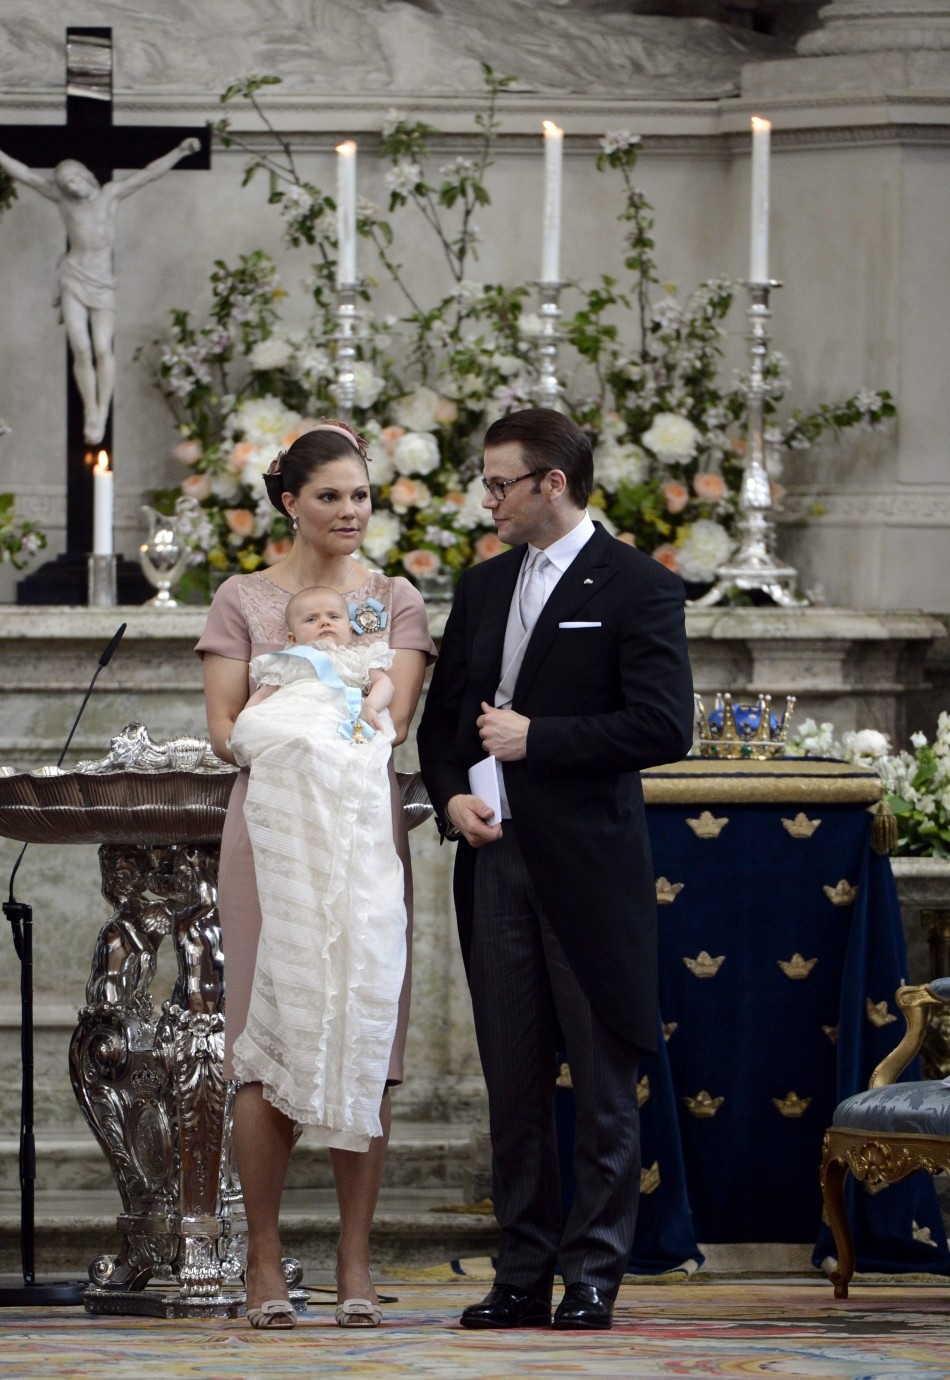 Swedens Crown Princess Victoria holds Princess Estelle as she stands with Prince Daniel after the christening ceremony, held at the Royal Chapel in Stockholm